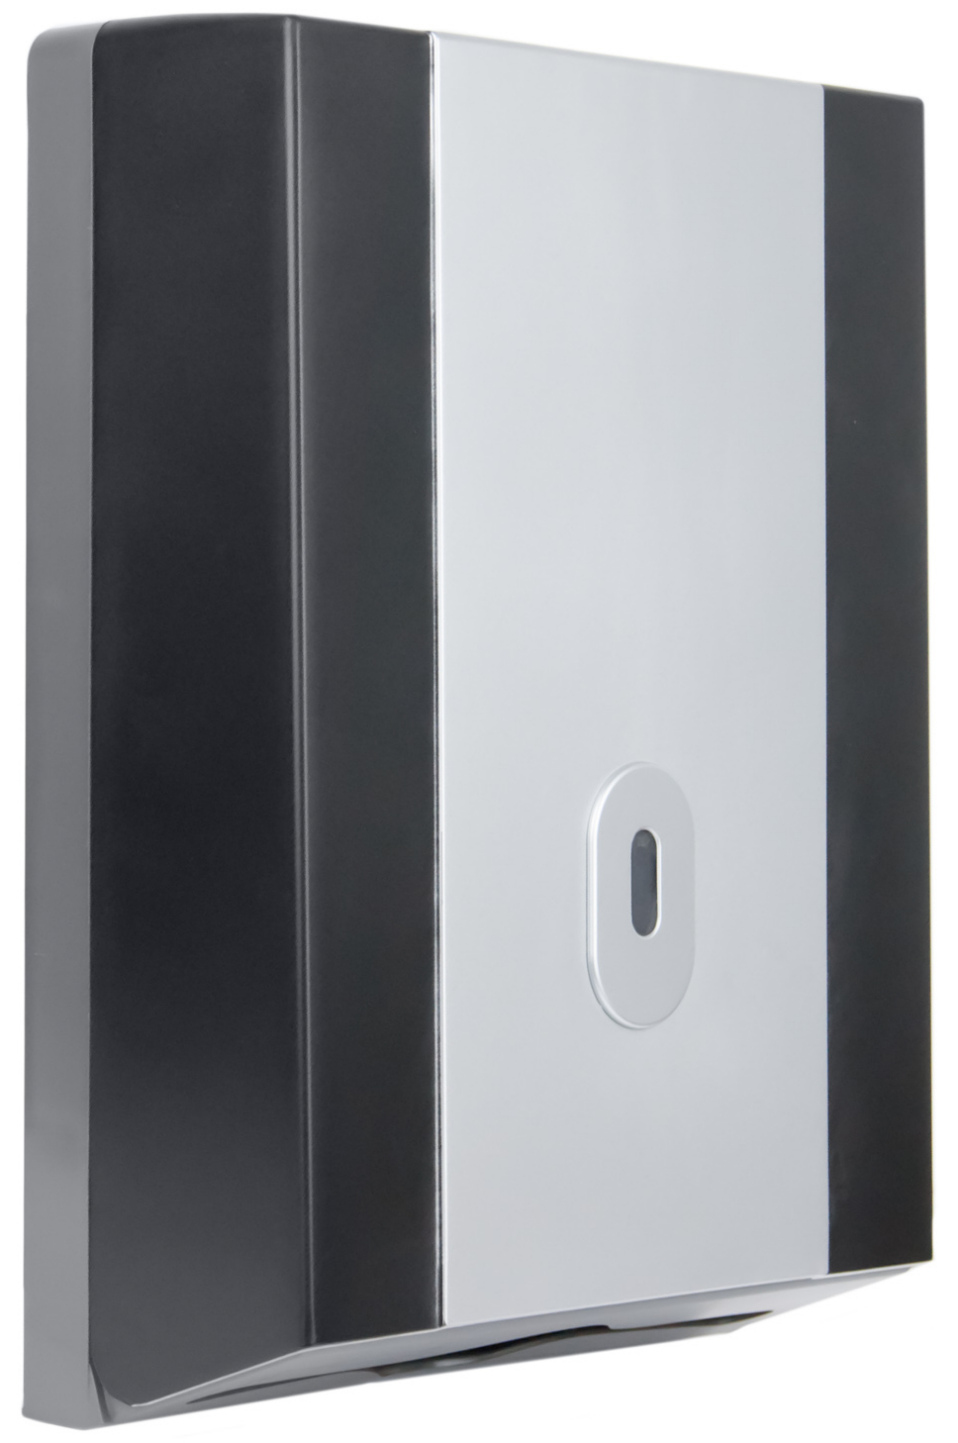 Black and Silver Paper Towel Dispenser